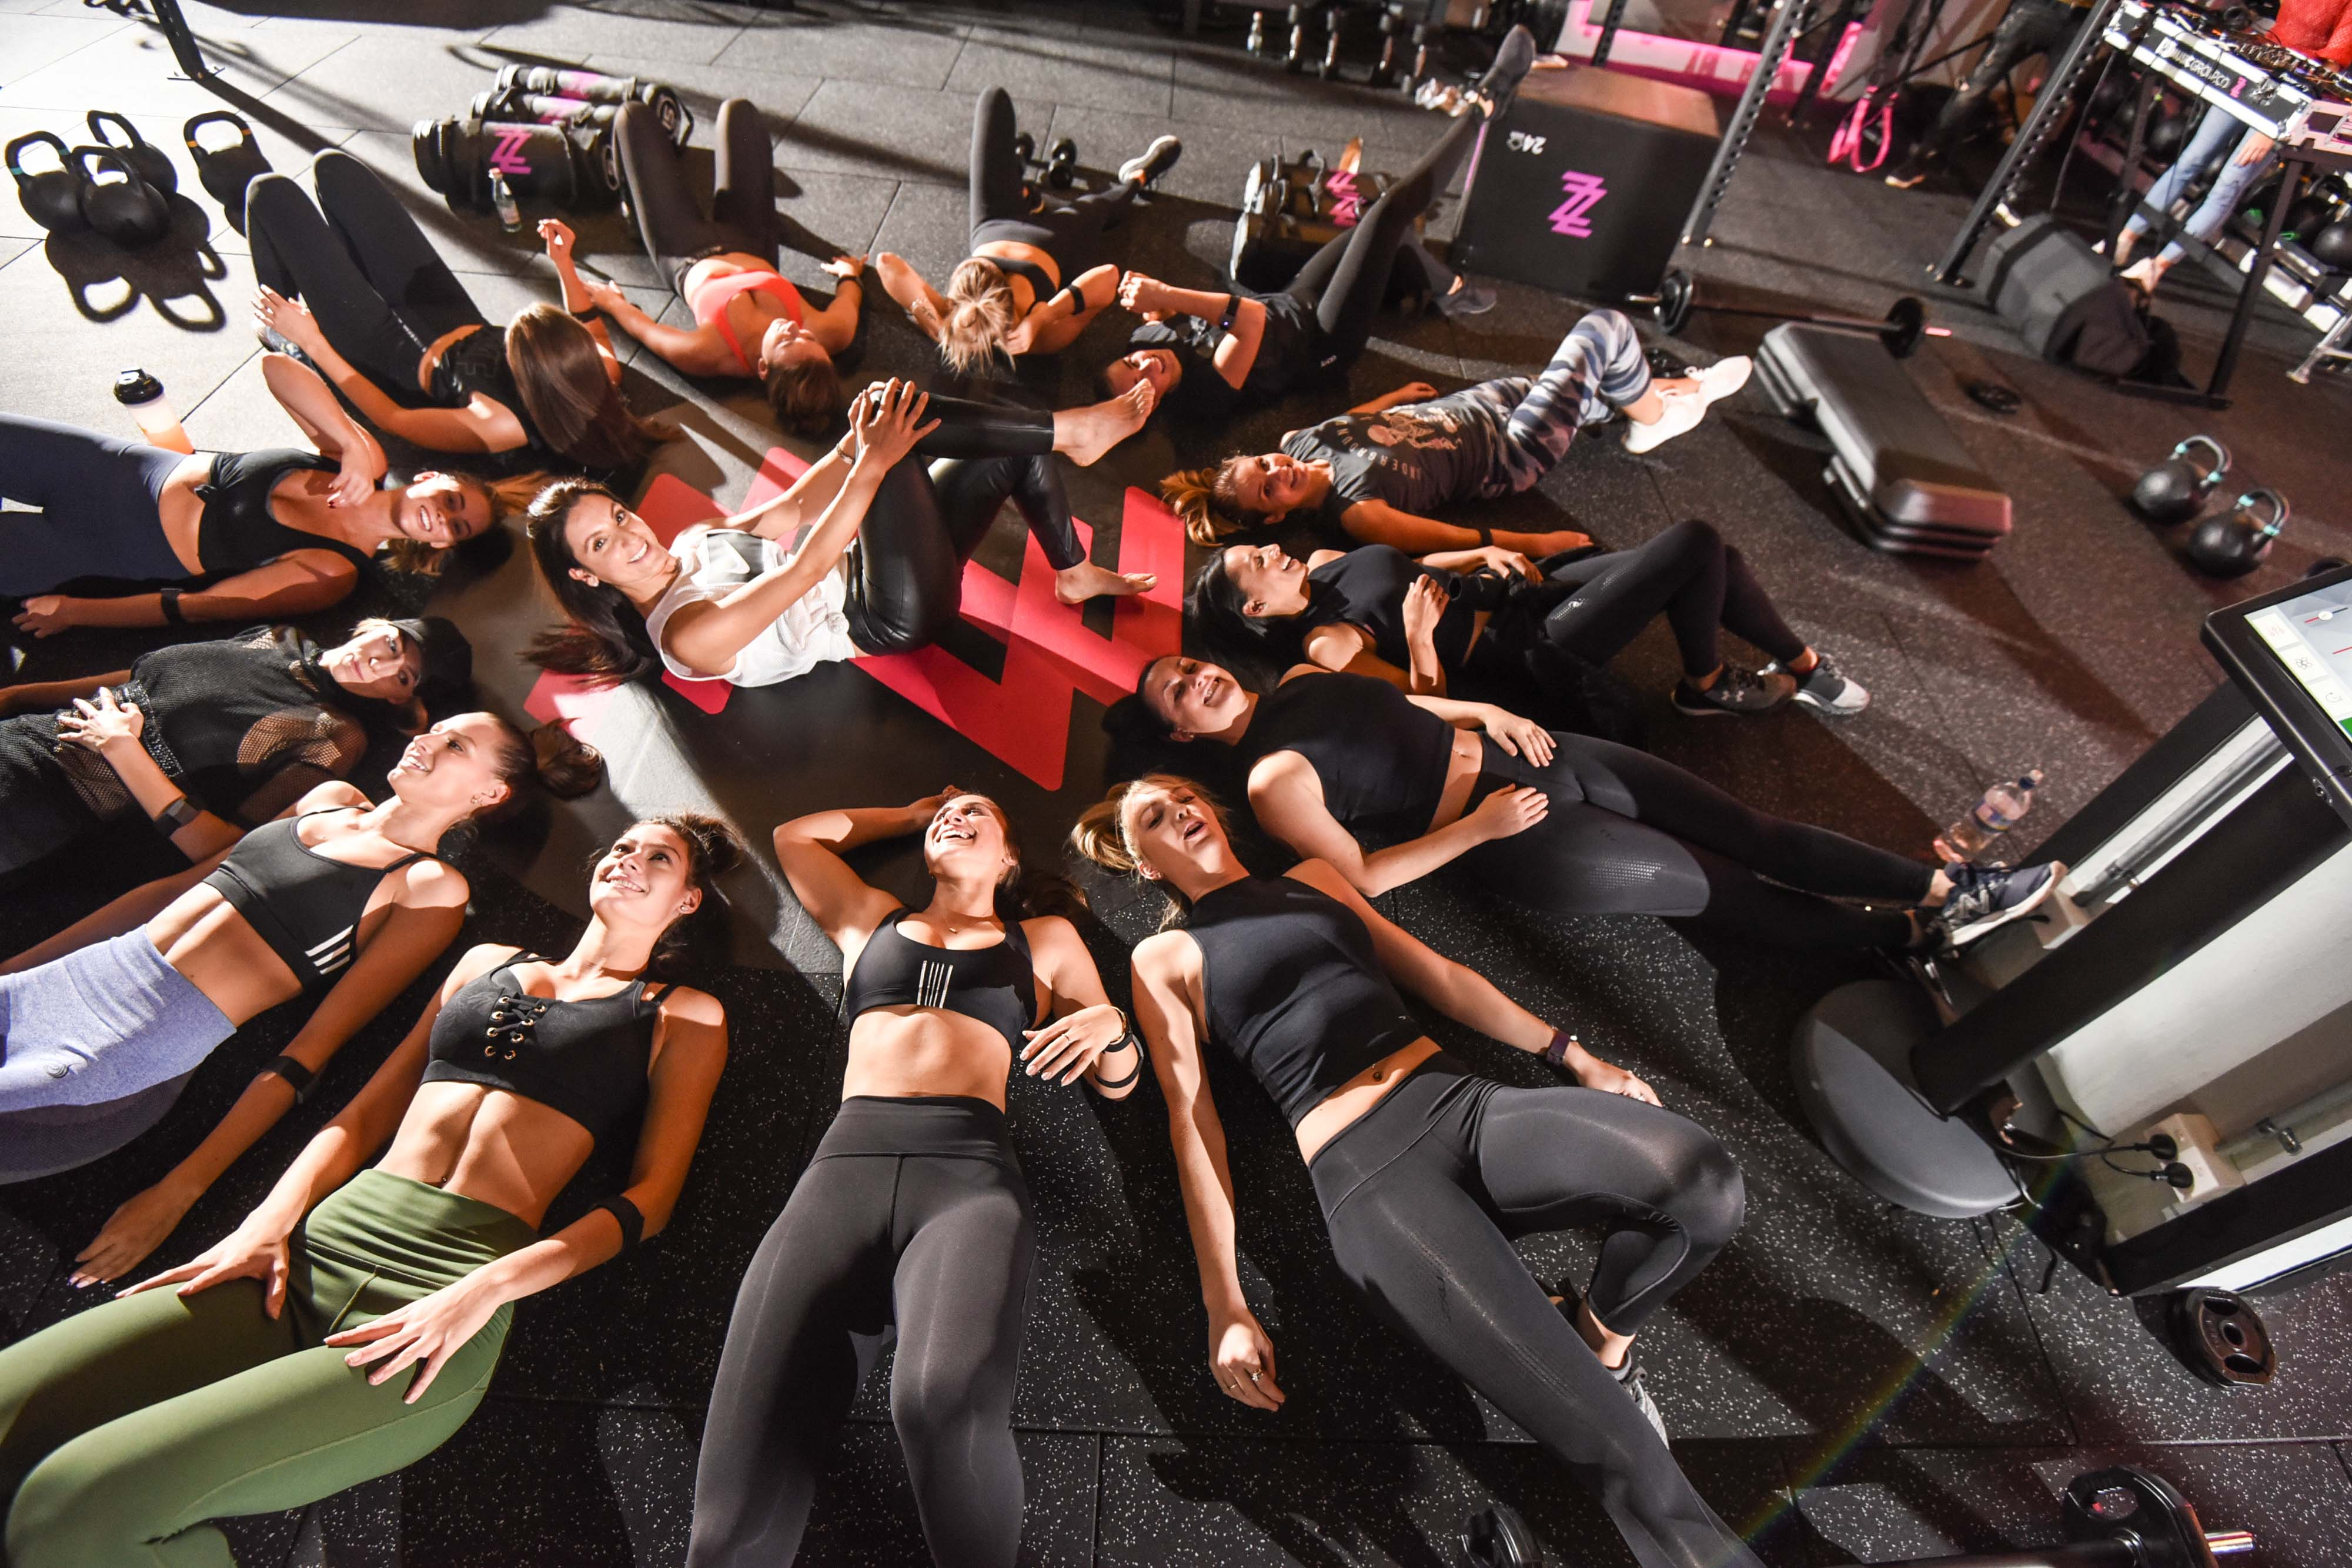 zadi-the-game-changer-in-female-fitness-boutique-studios-not-a-gym-6